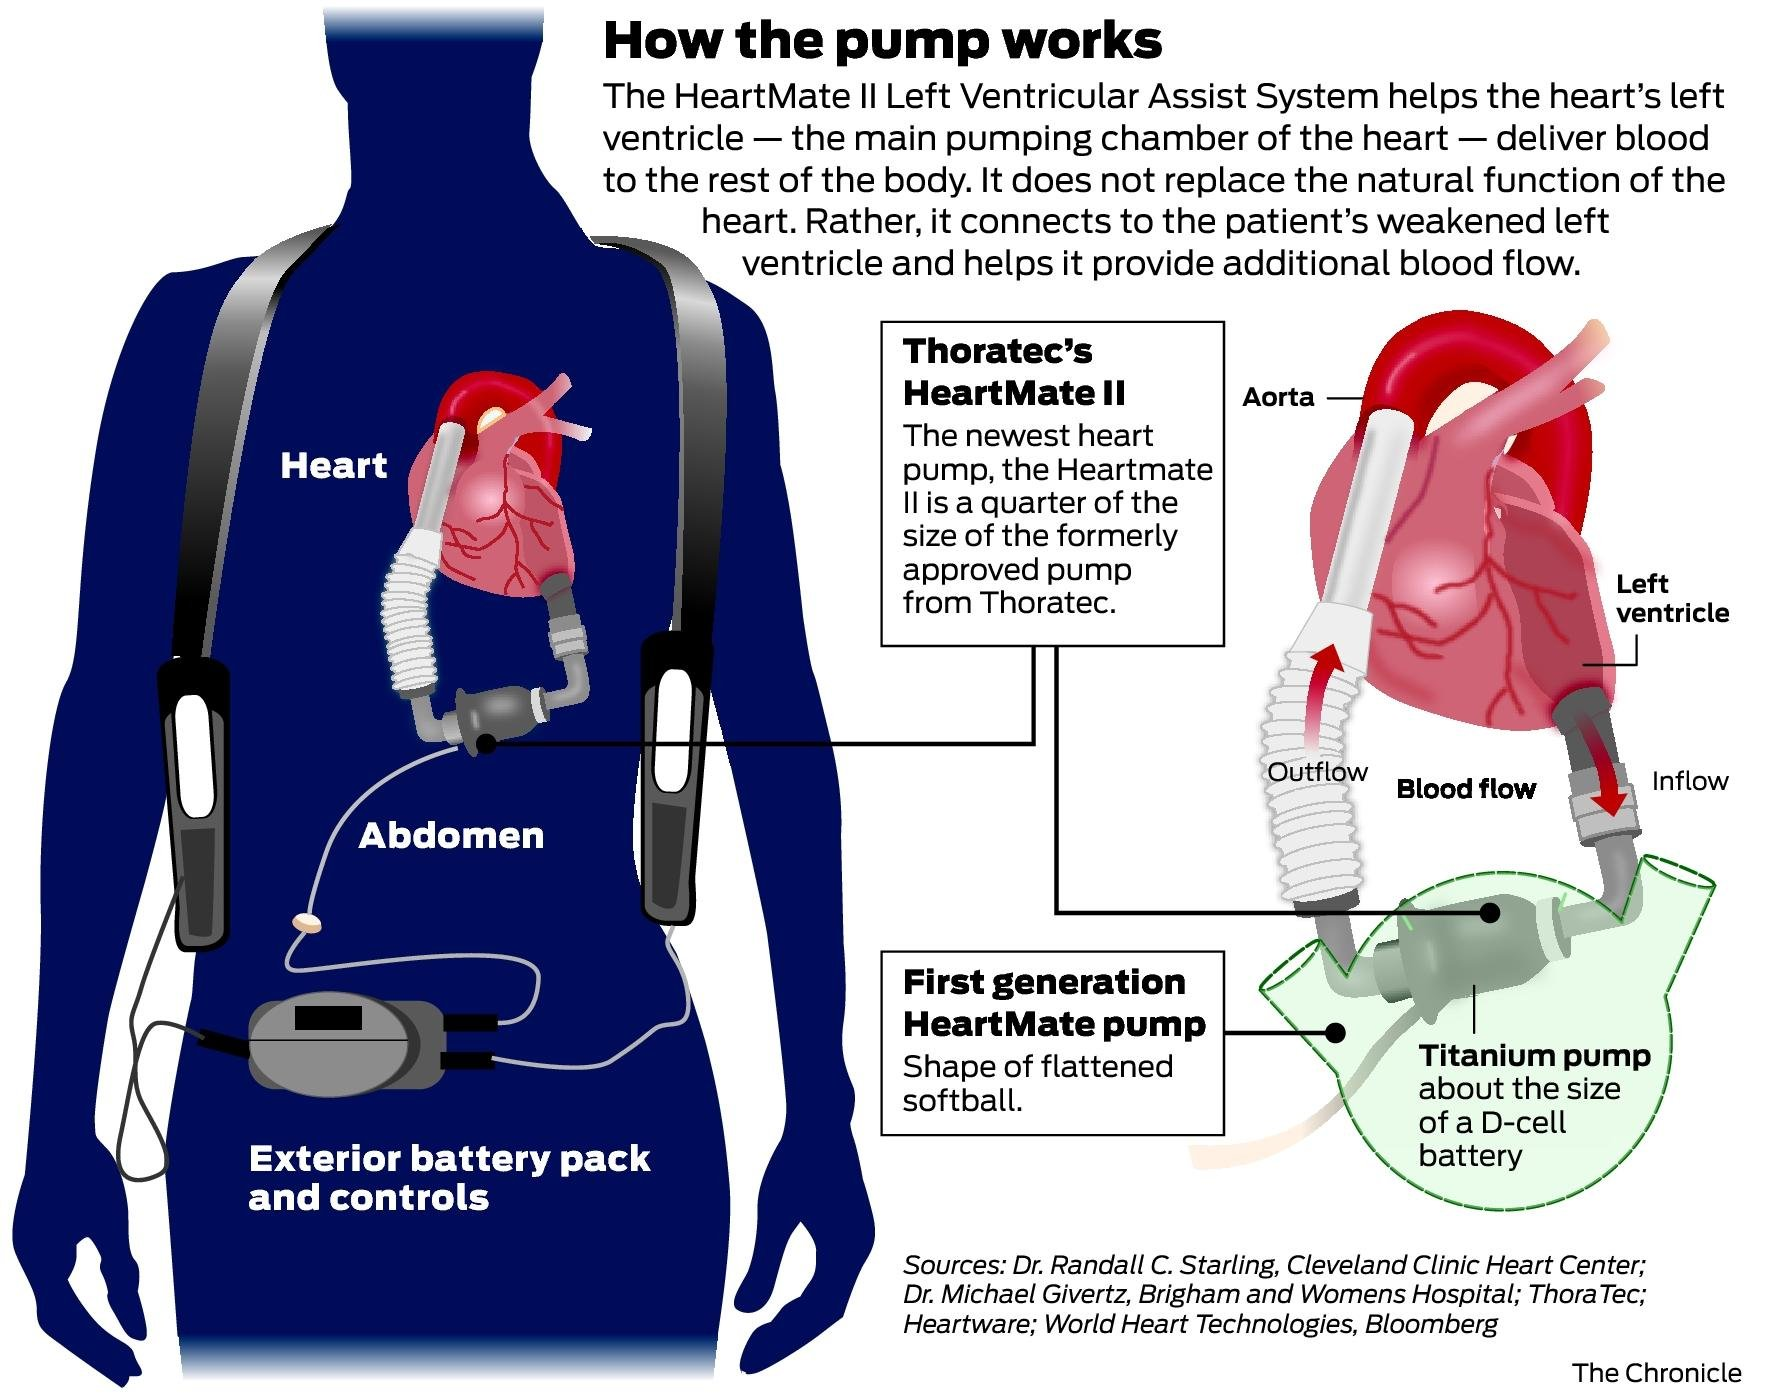 thoratec warns of heart pump u0026 39 s link to 4 patient deaths